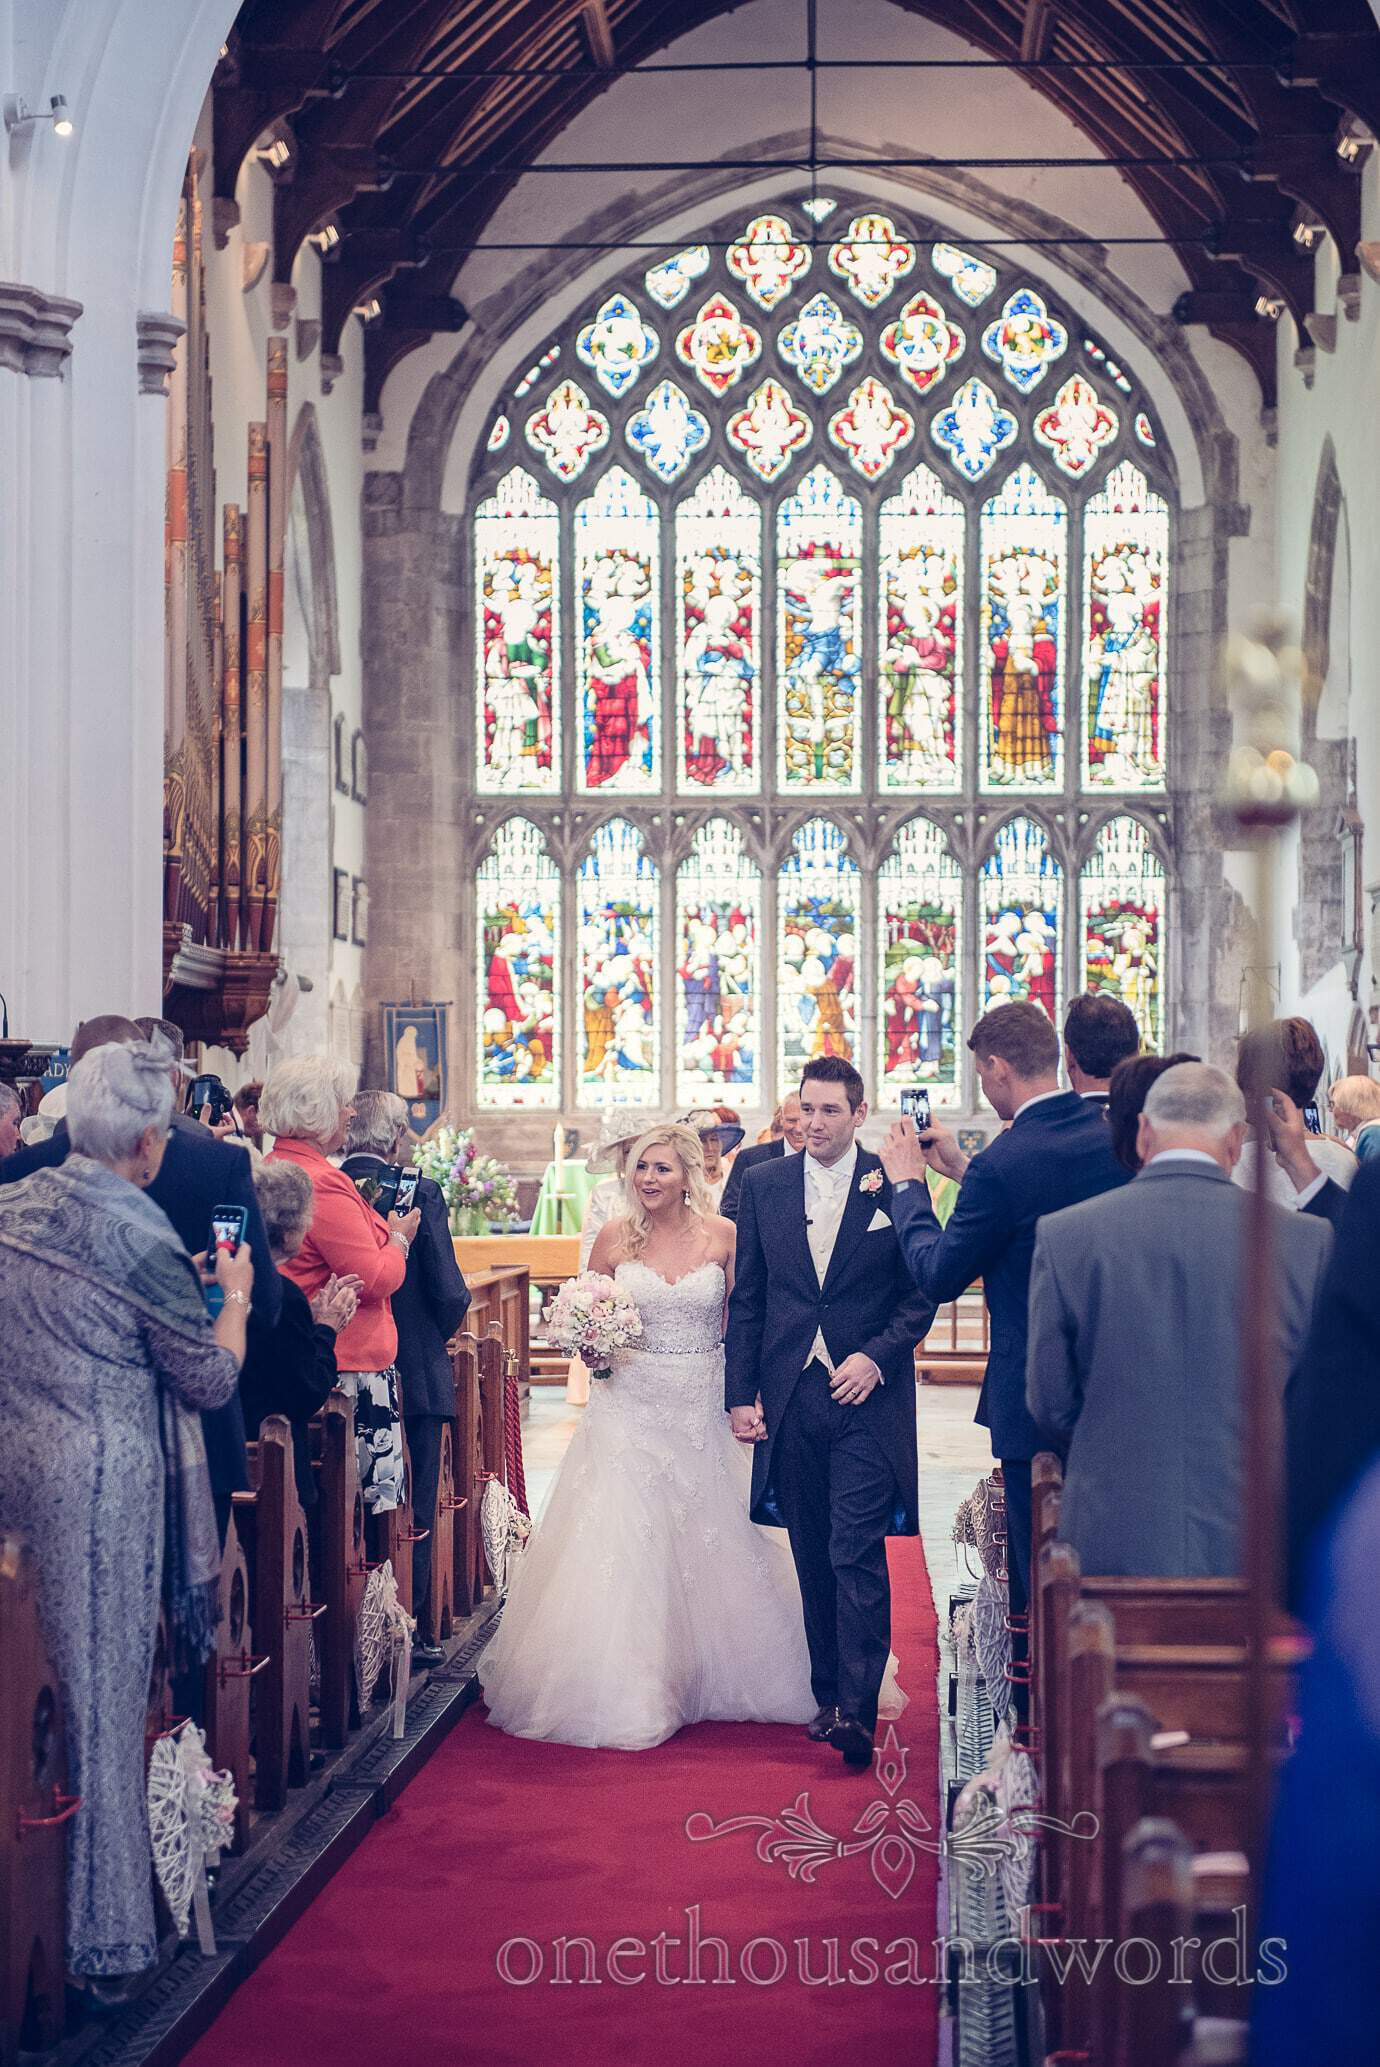 Bride and Groom walk down the aisle at St Marys Church wedding in Wareham